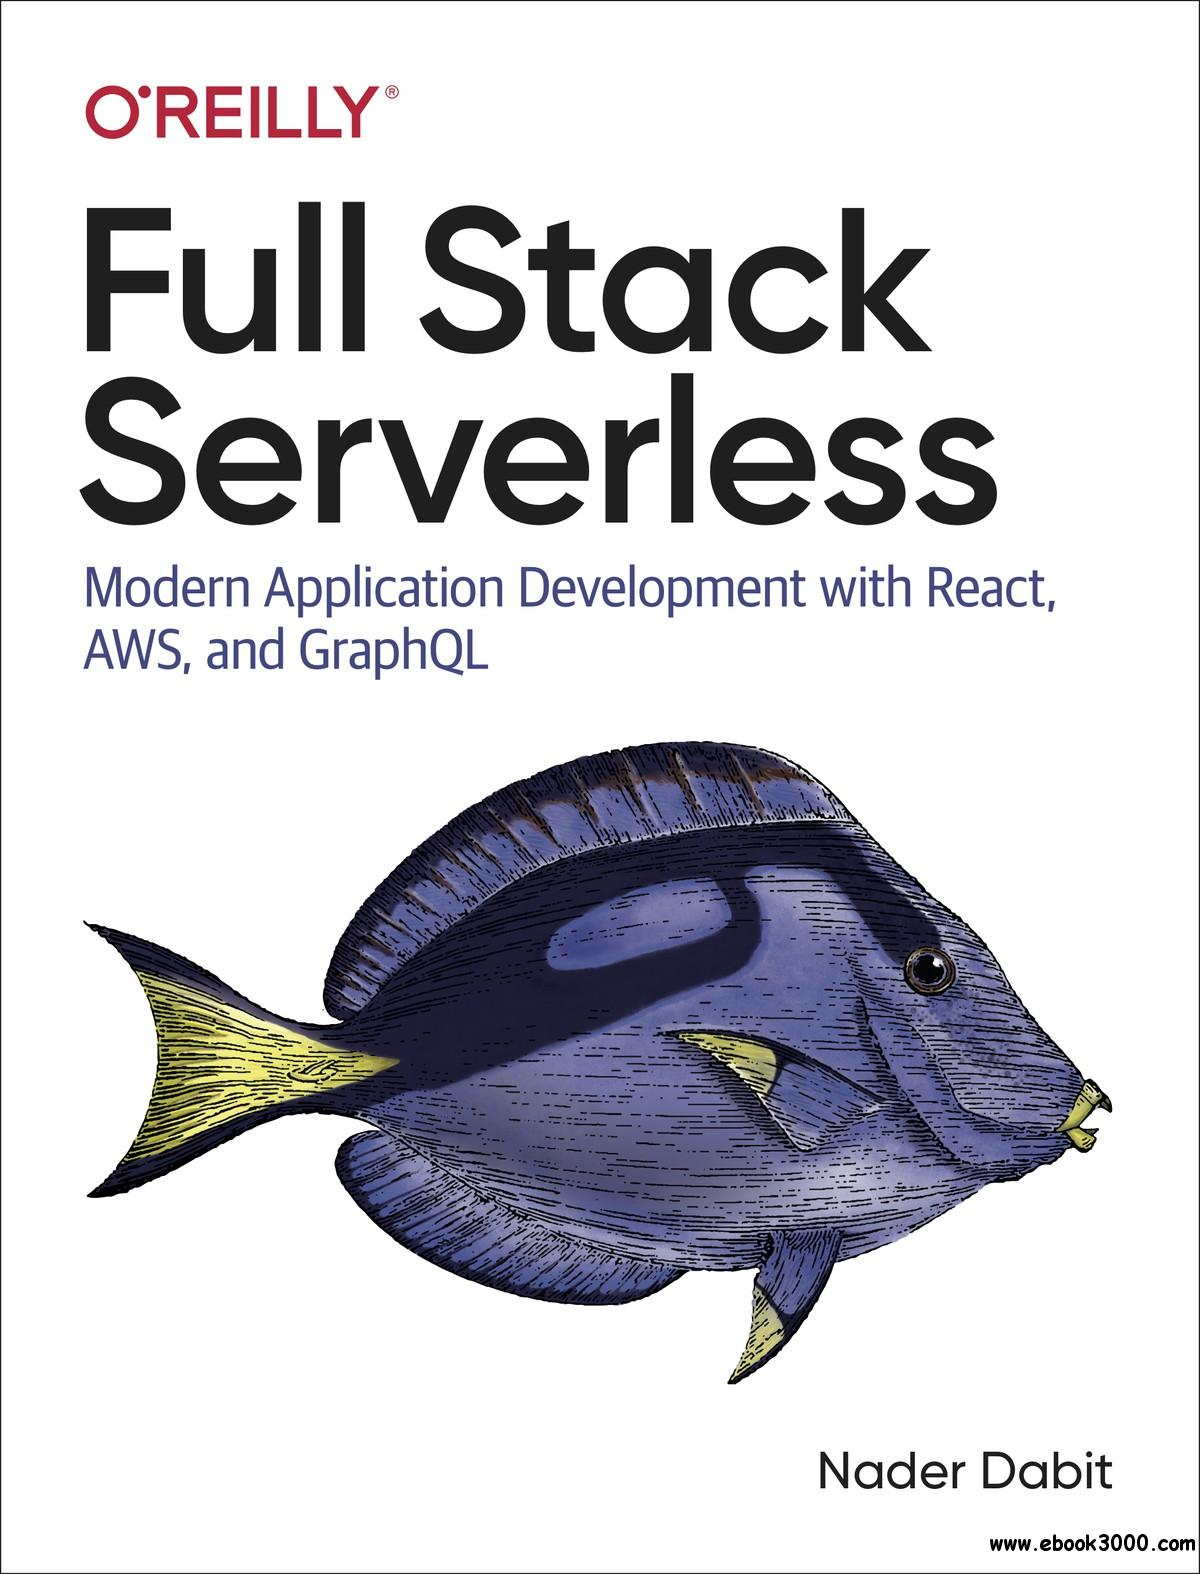 Full Stack Serverless: Modern Application Development with React, AWS, and GraphQL